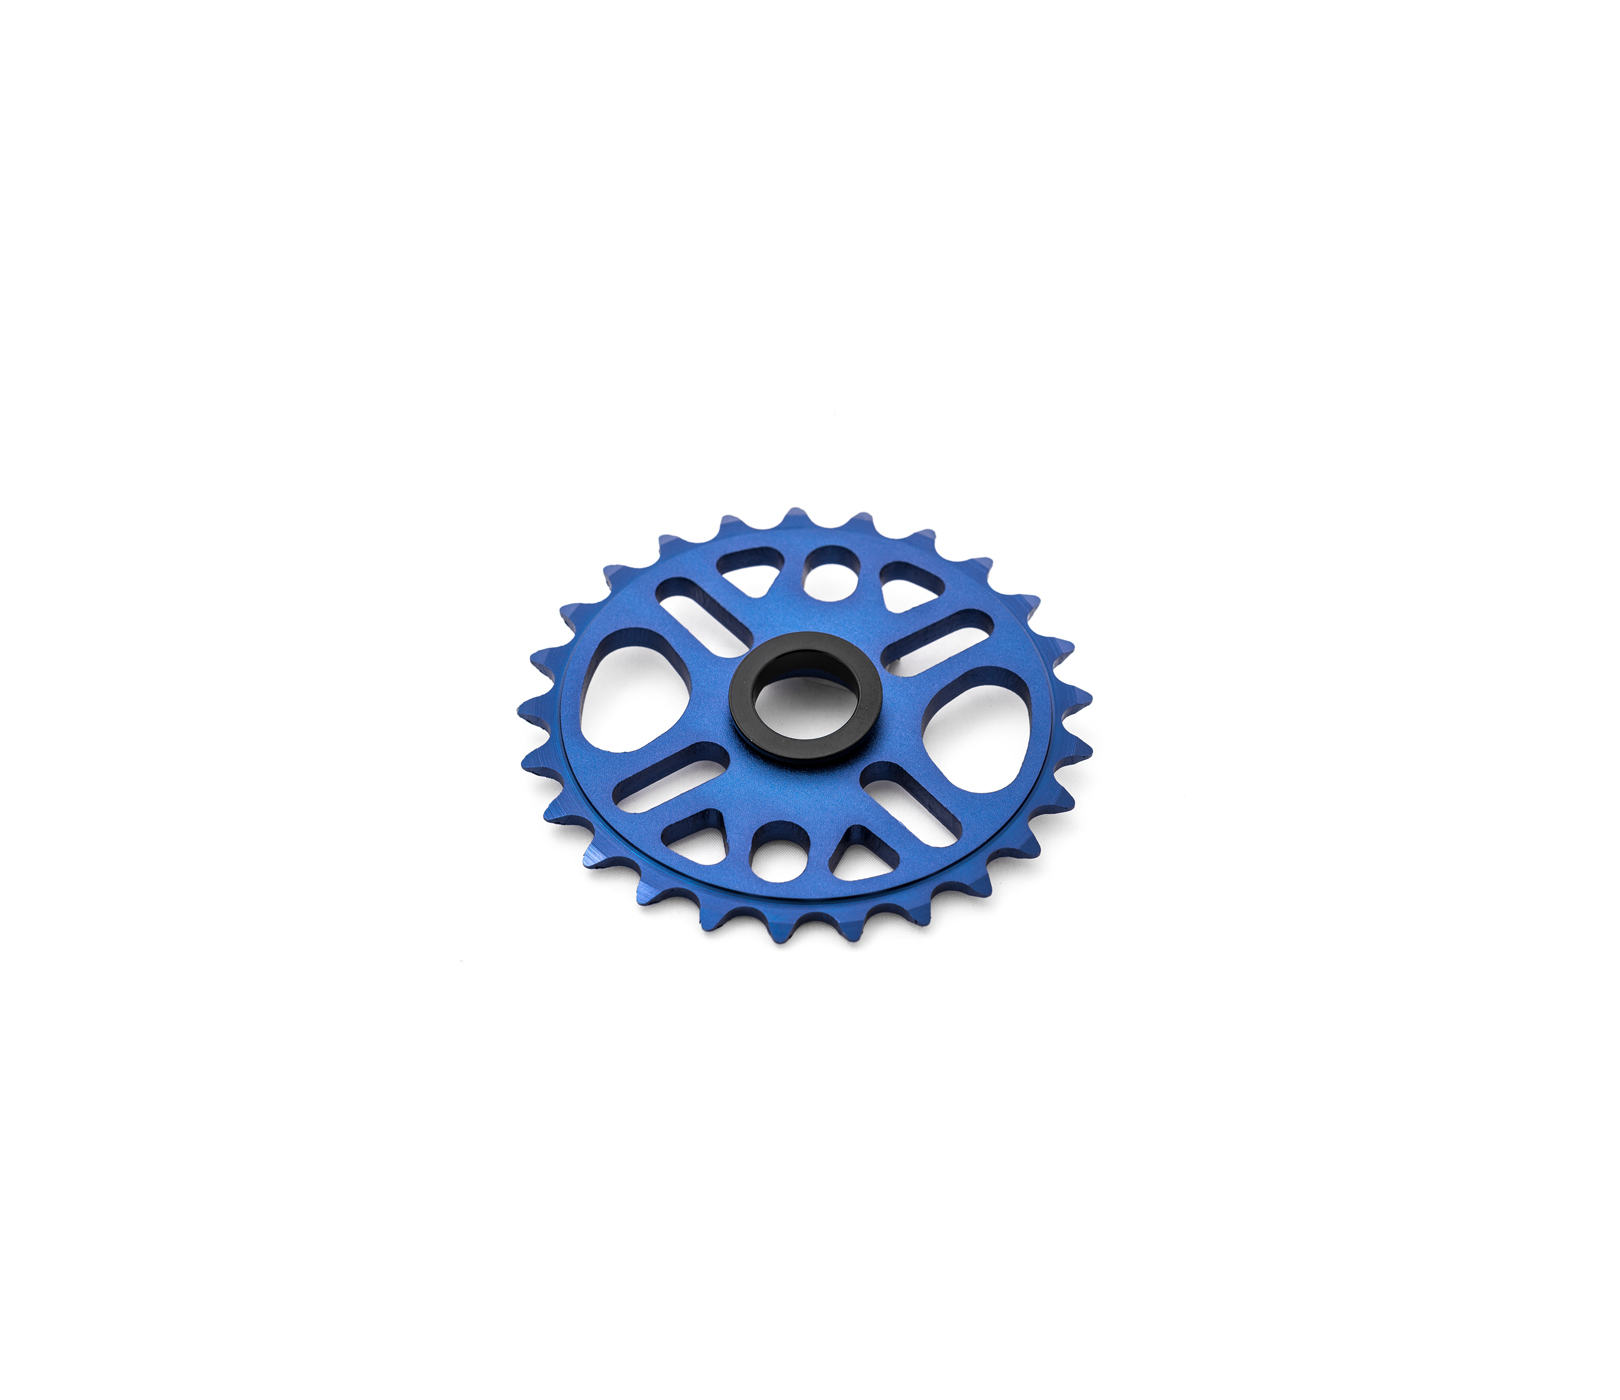 25-TOOTH CHAINWHEEL RUDE 20 MODELS